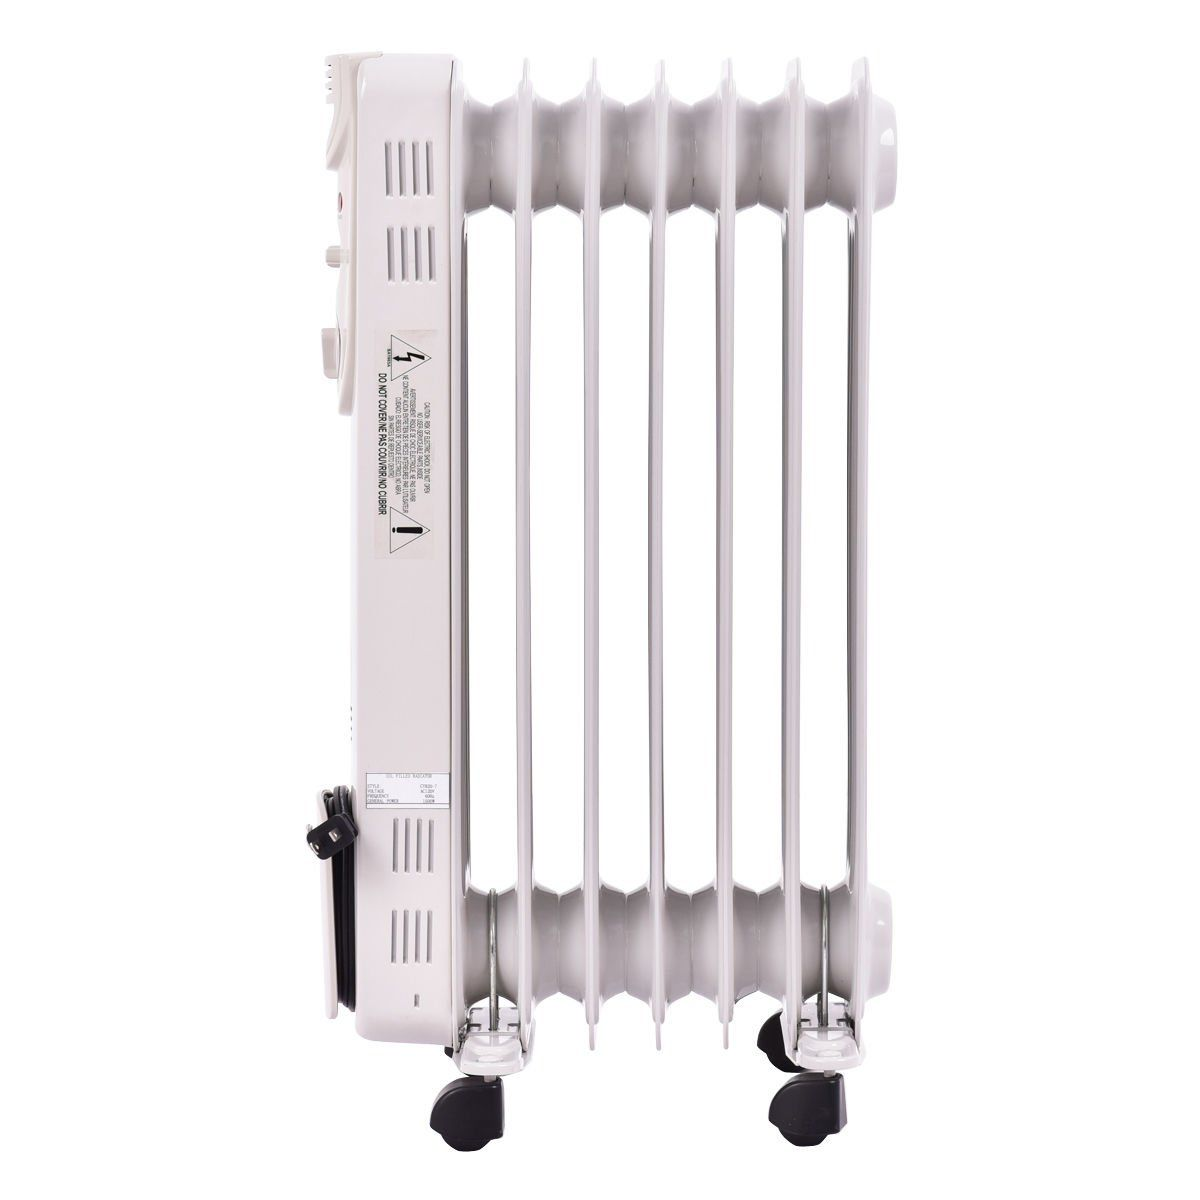 Overflow Supplies 1500W Electric Oil Filled Radiator Space